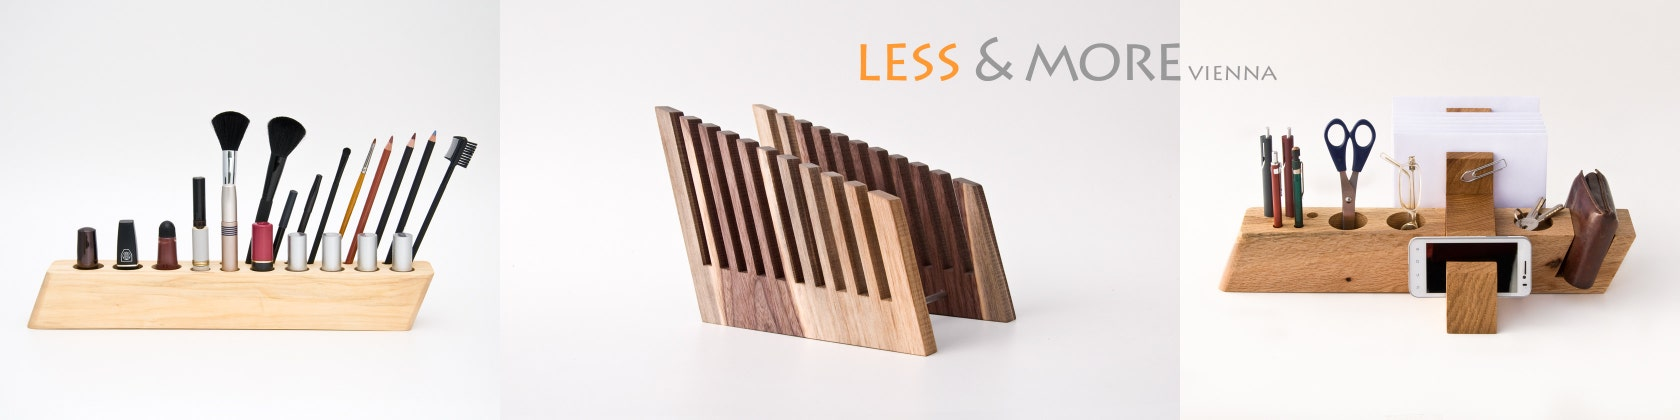 View Makeup Organizers By Lessandmore On Etsy - Cosmetic makeup organizer wood countertop organizer by lessandmore